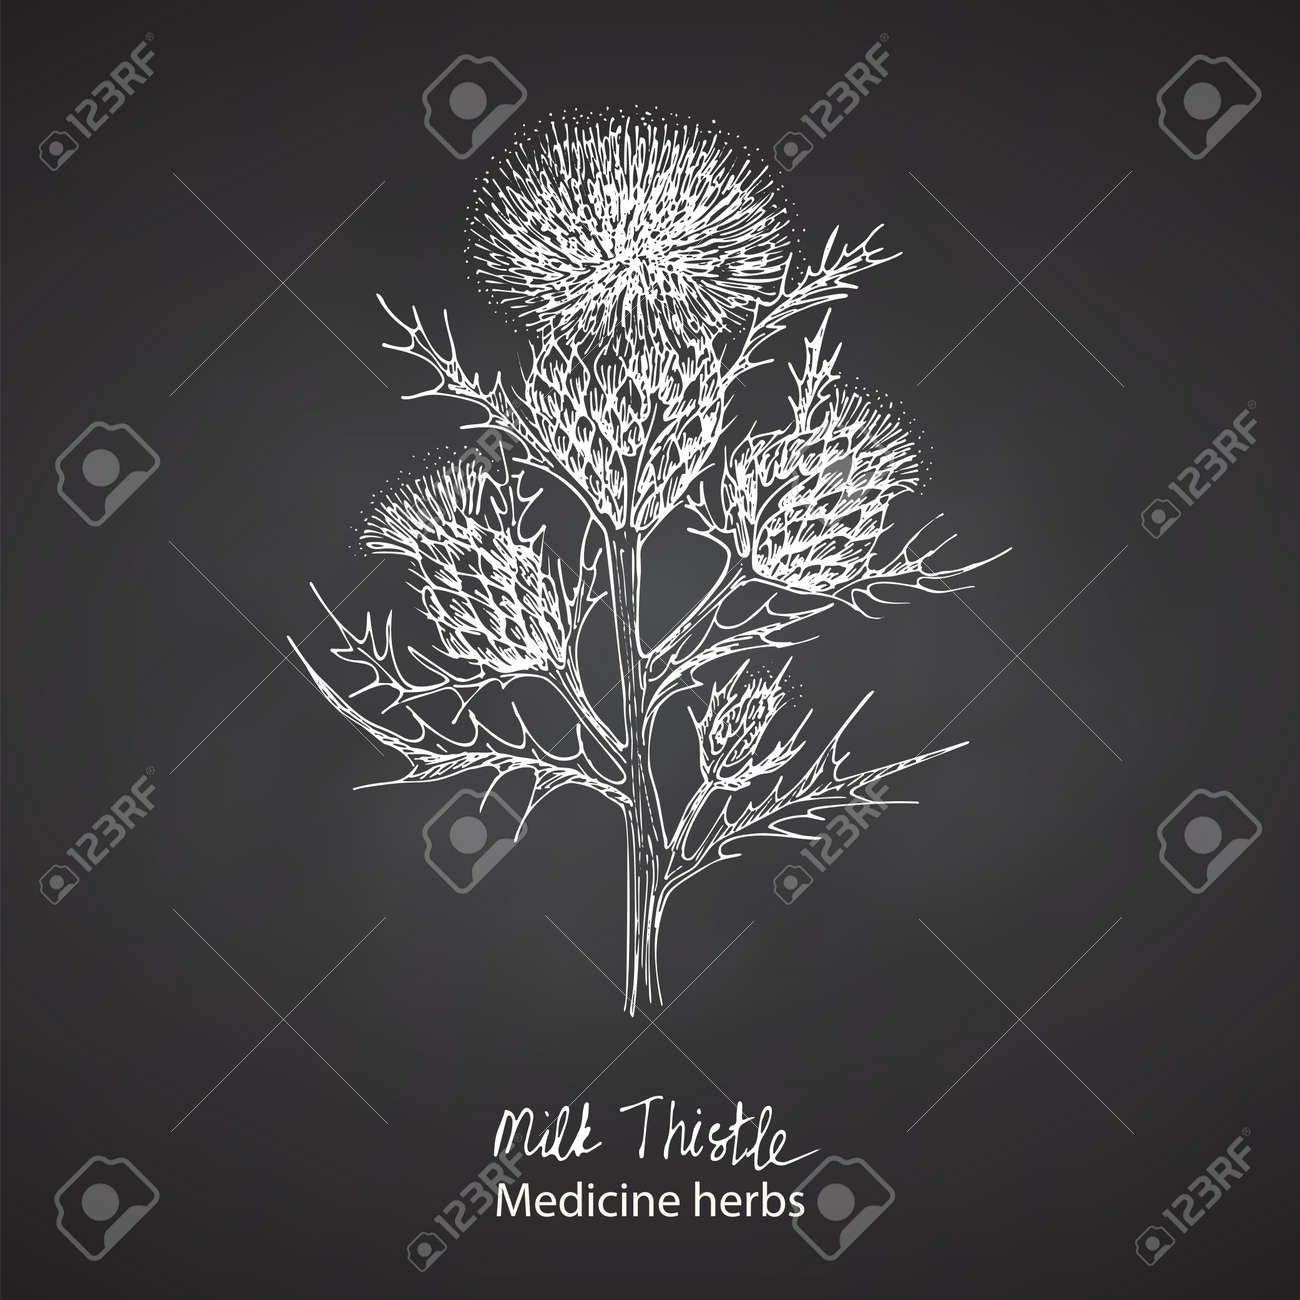 Set hand drawn of Milk Thistle, lives and flowers in White color isolated on chalkboard background. Retro vintage graphic design. Botanical sketch drawing, engraving style. Vector. - 162597301